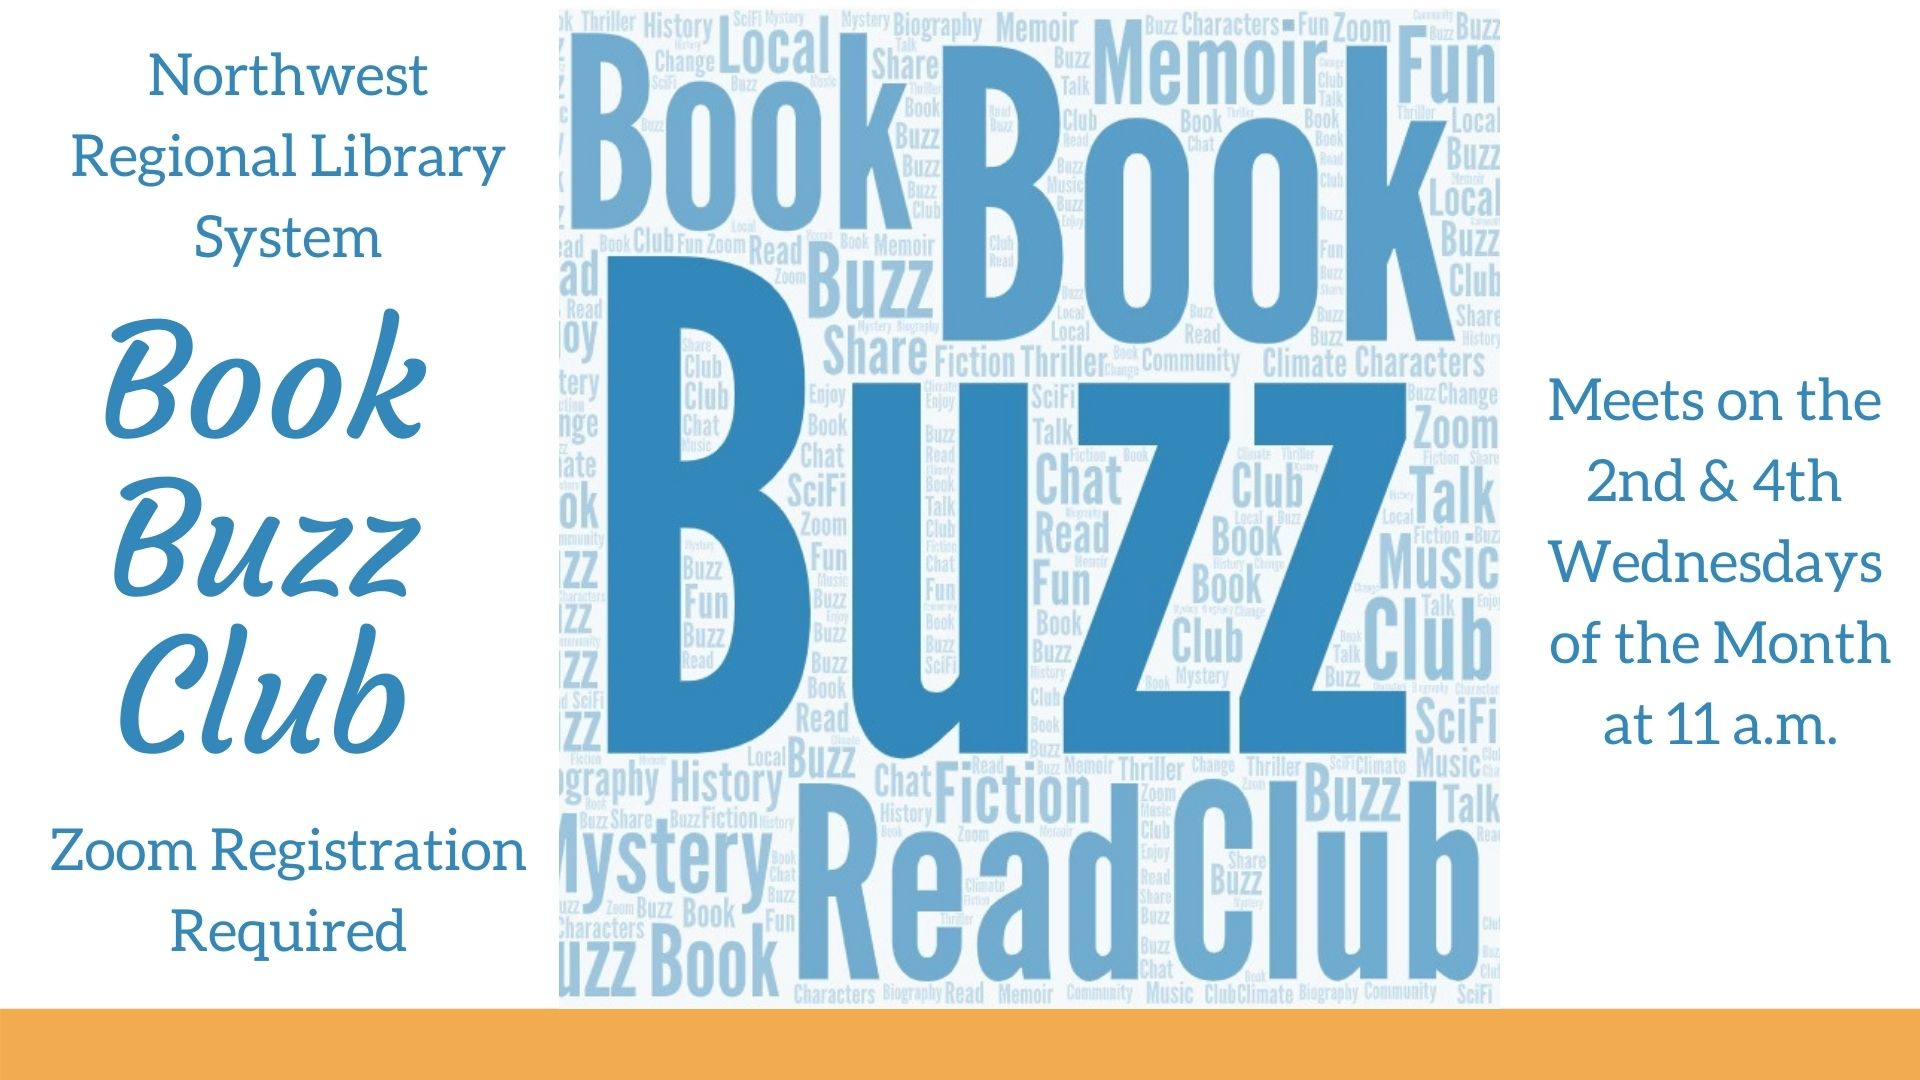 Book Buzz Book Club Zoom Registration Required meets on the 2nd and 4th Wednesdays of the month